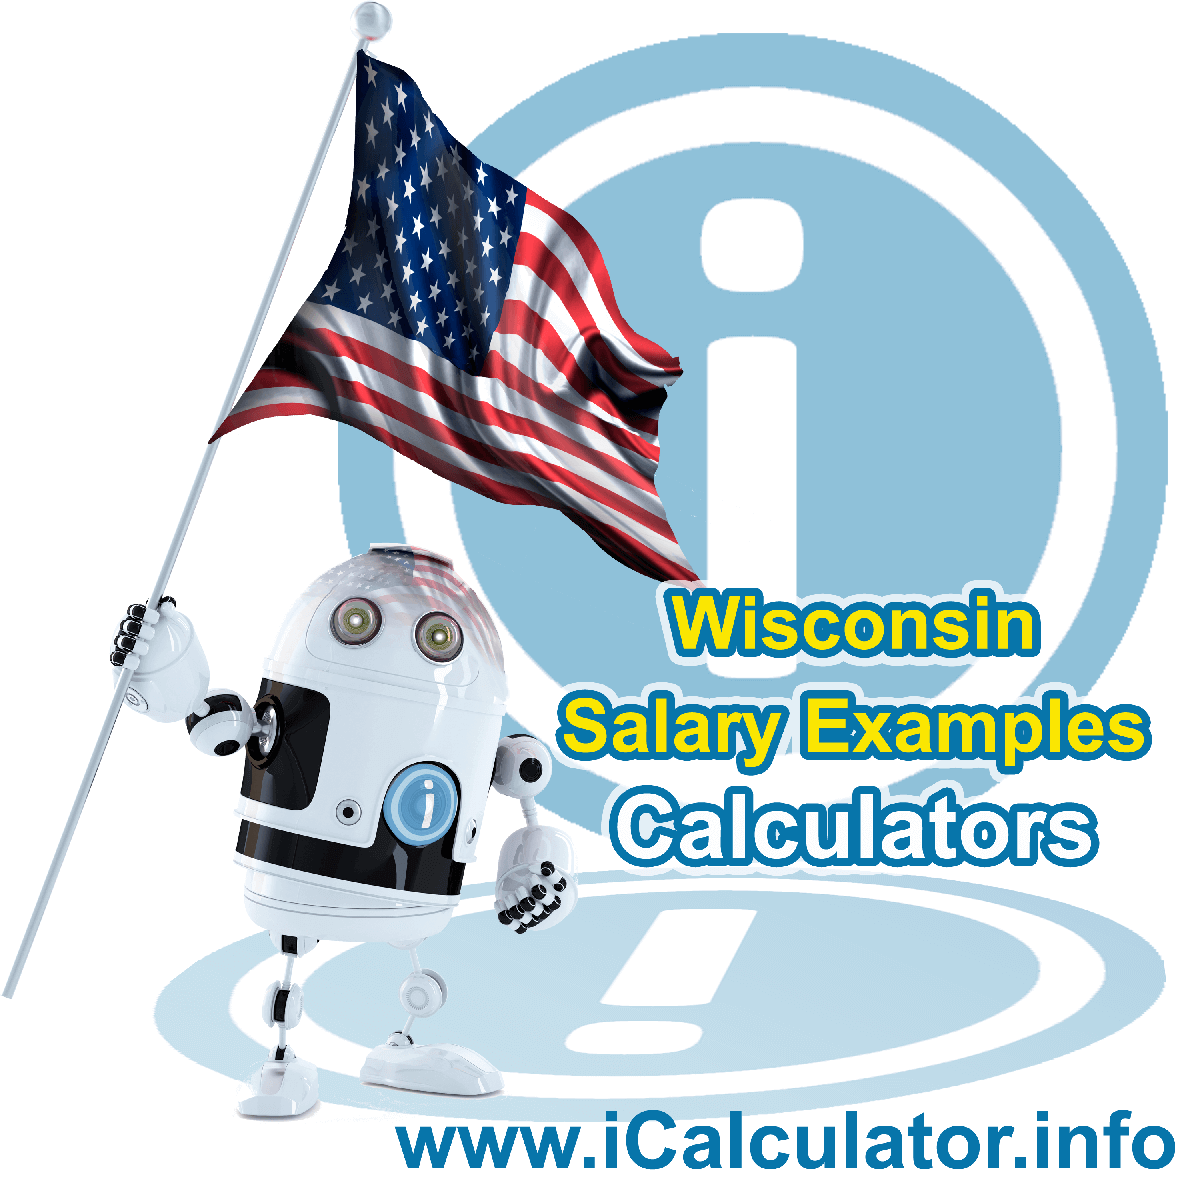 Wisconsin Salary Example for $280.00 in 2020 | iCalculator | $280.00 salary example for employee and employer paying Wisconsin State tincome taxes. Detailed salary after tax calculation including Wisconsin State Tax, Federal State Tax, Medicare Deductions, Social Security, Capital Gains and other income tax and salary deductions complete with supporting Wisconsin state tax tables